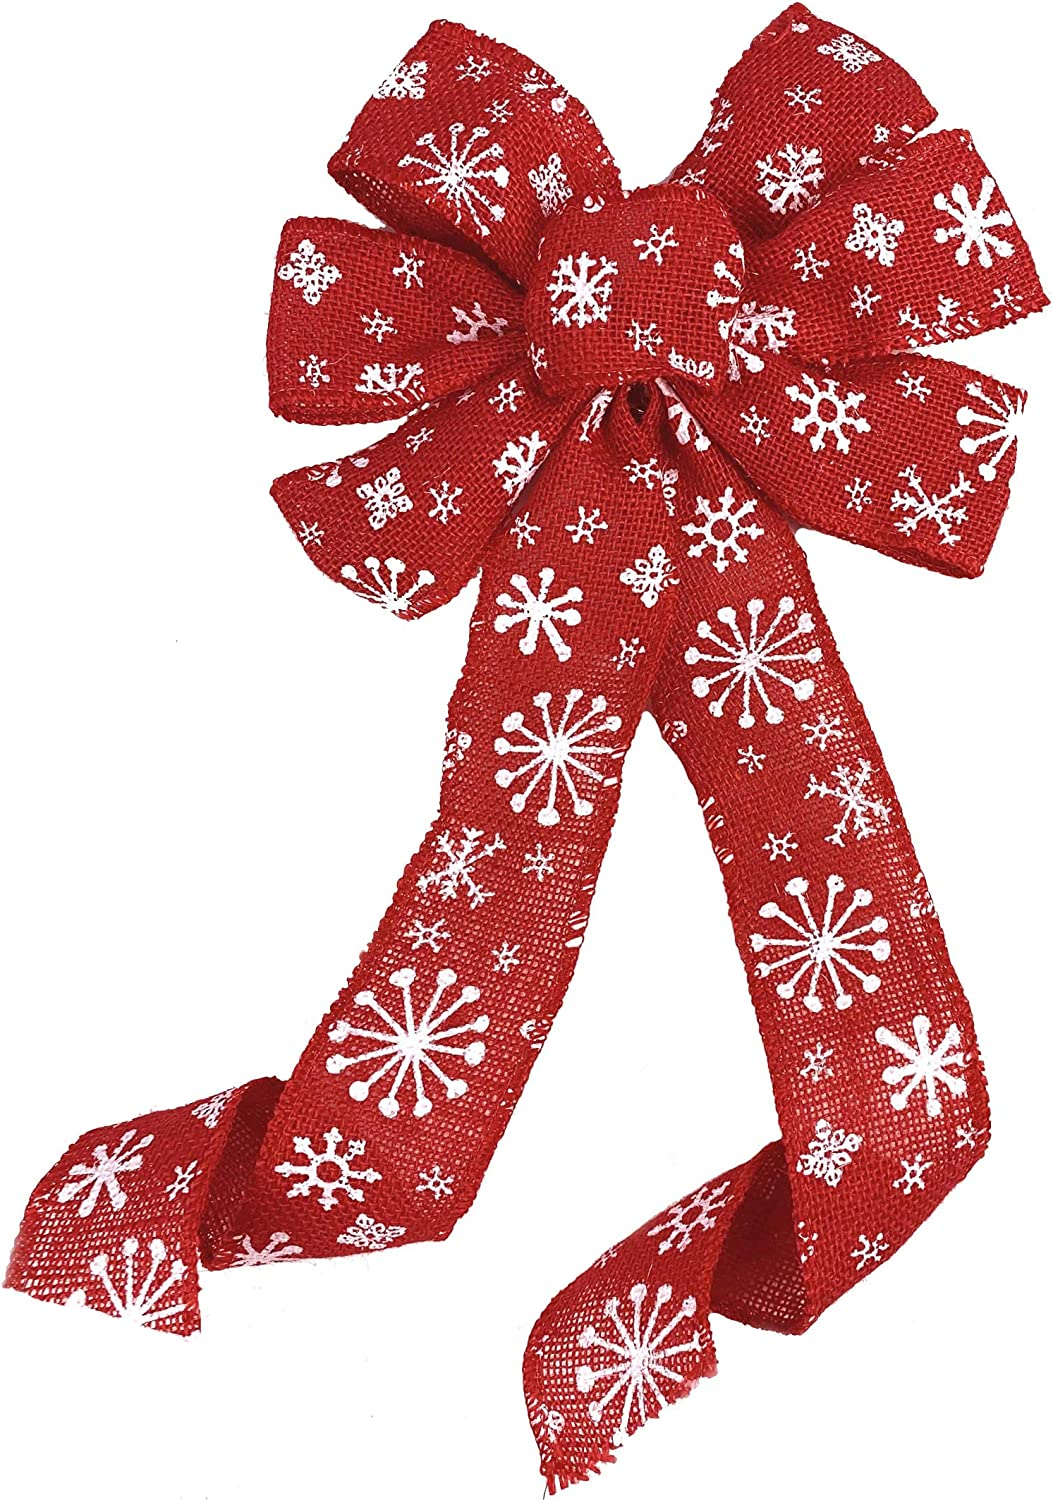 """White Snowflake Christmas Wreath Bow - 10"""" Wide, 18"""" Long Pre-Tied Bow, White Snowflakes, Red Burlap, Gift Basket, Swag, Garland, Winter Decoration, Front Door Decor, Christmas Tree Ribbon"""